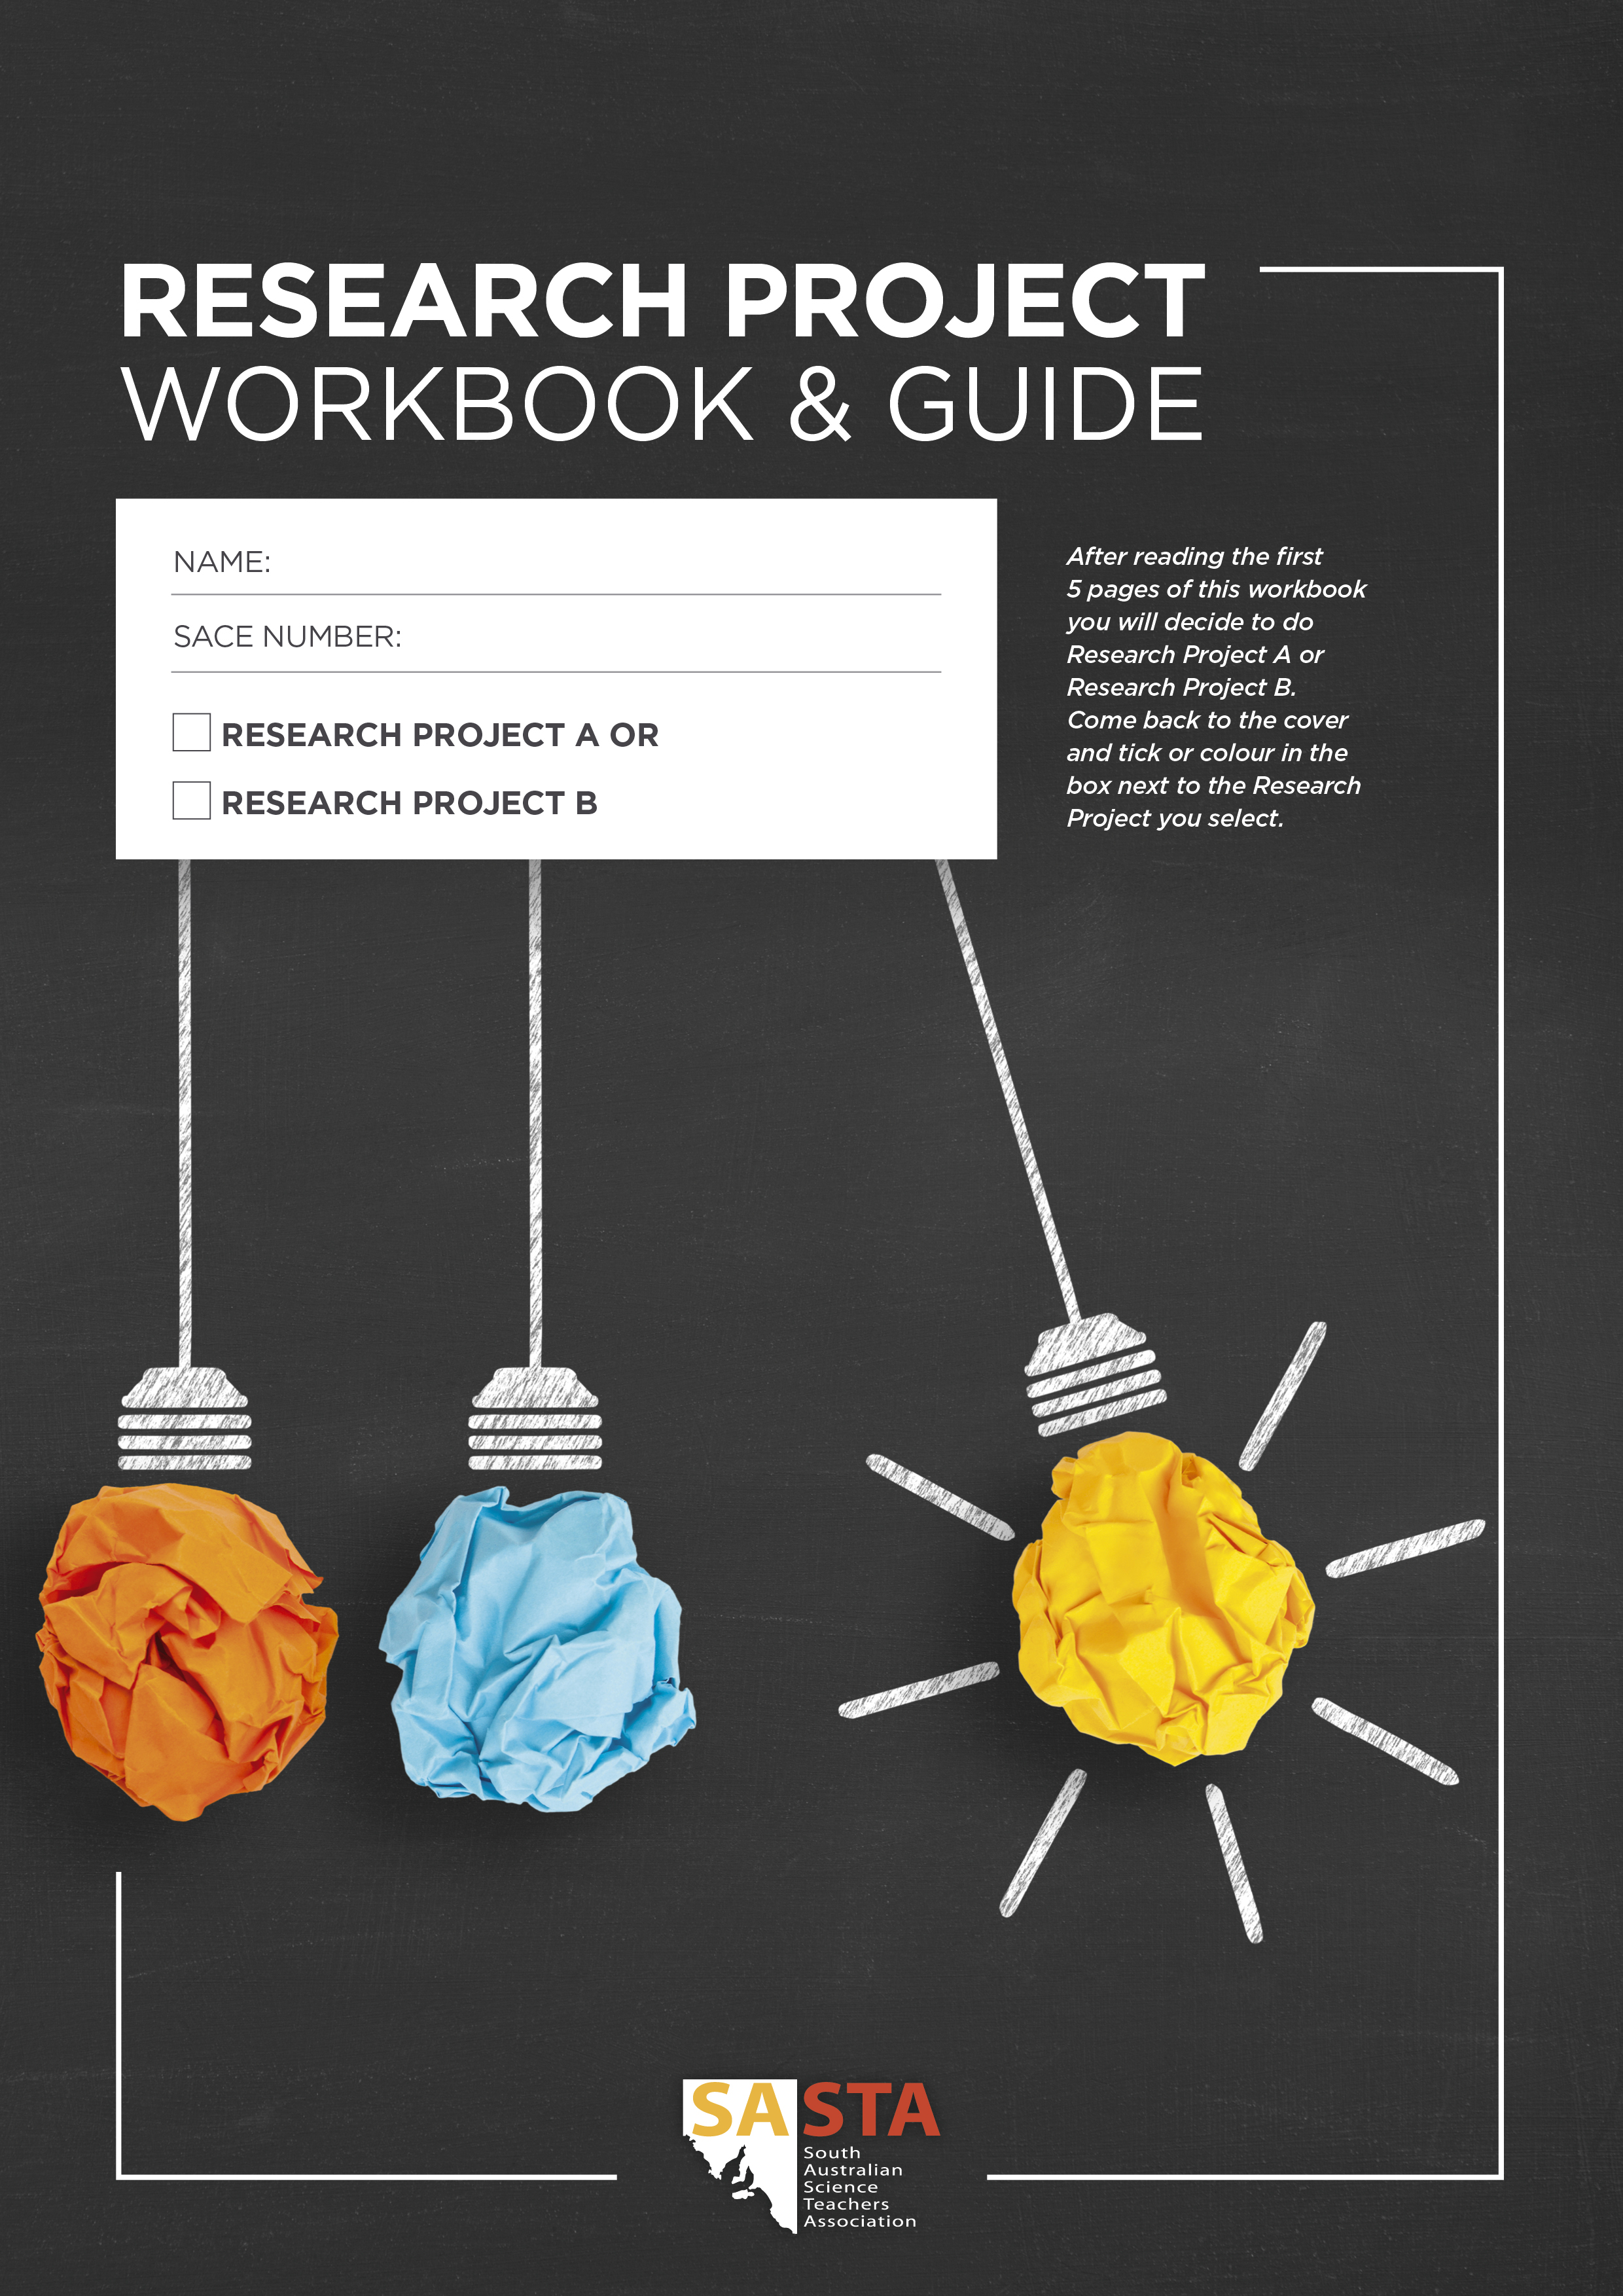 Research Project Workbook cover